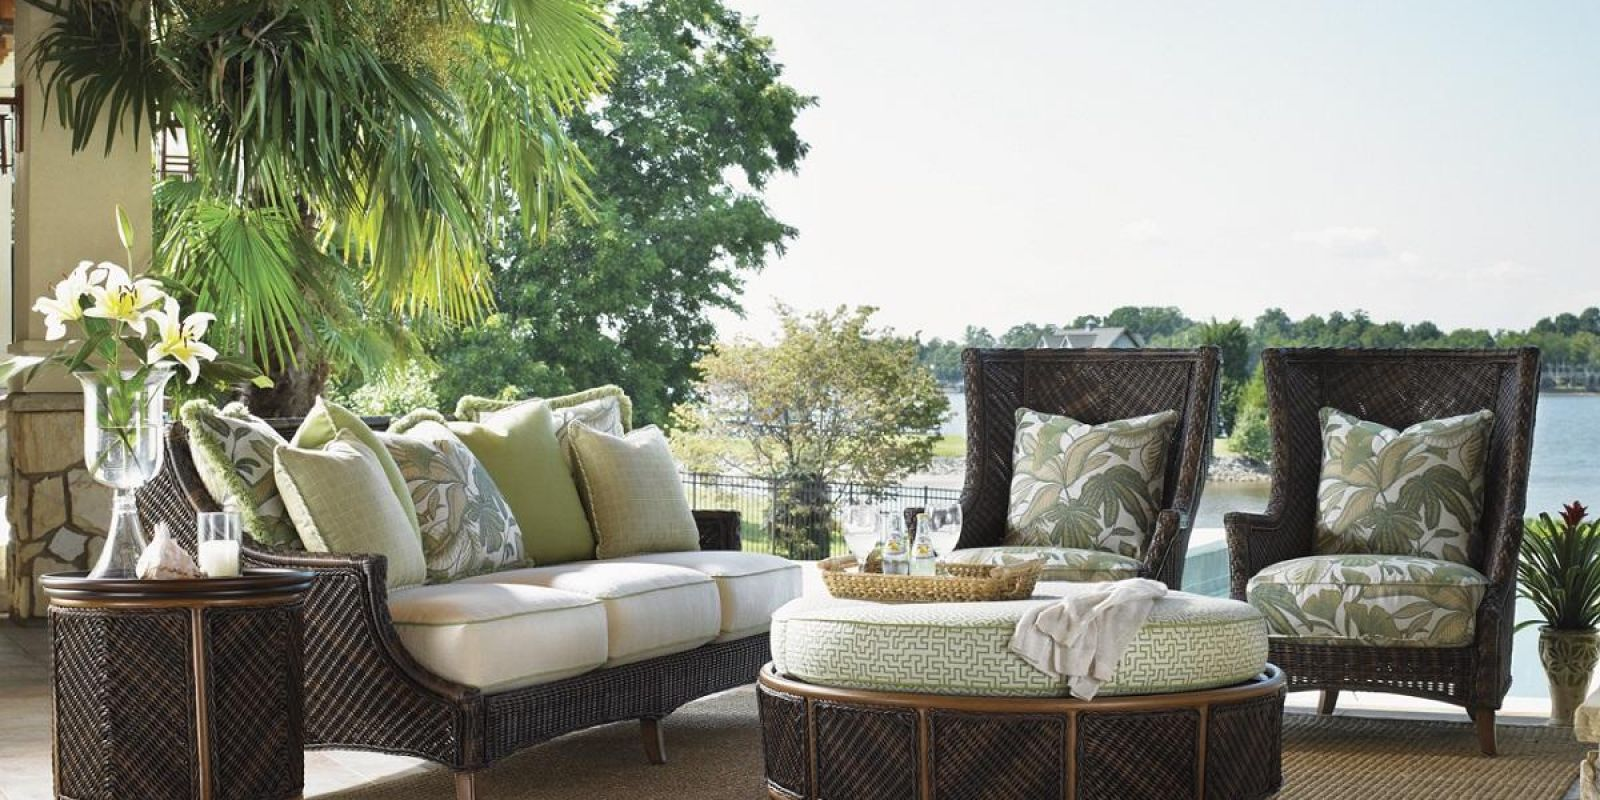 Outdoor Furniture | American Casual Living on Porch & Patio Casual Living id=64113